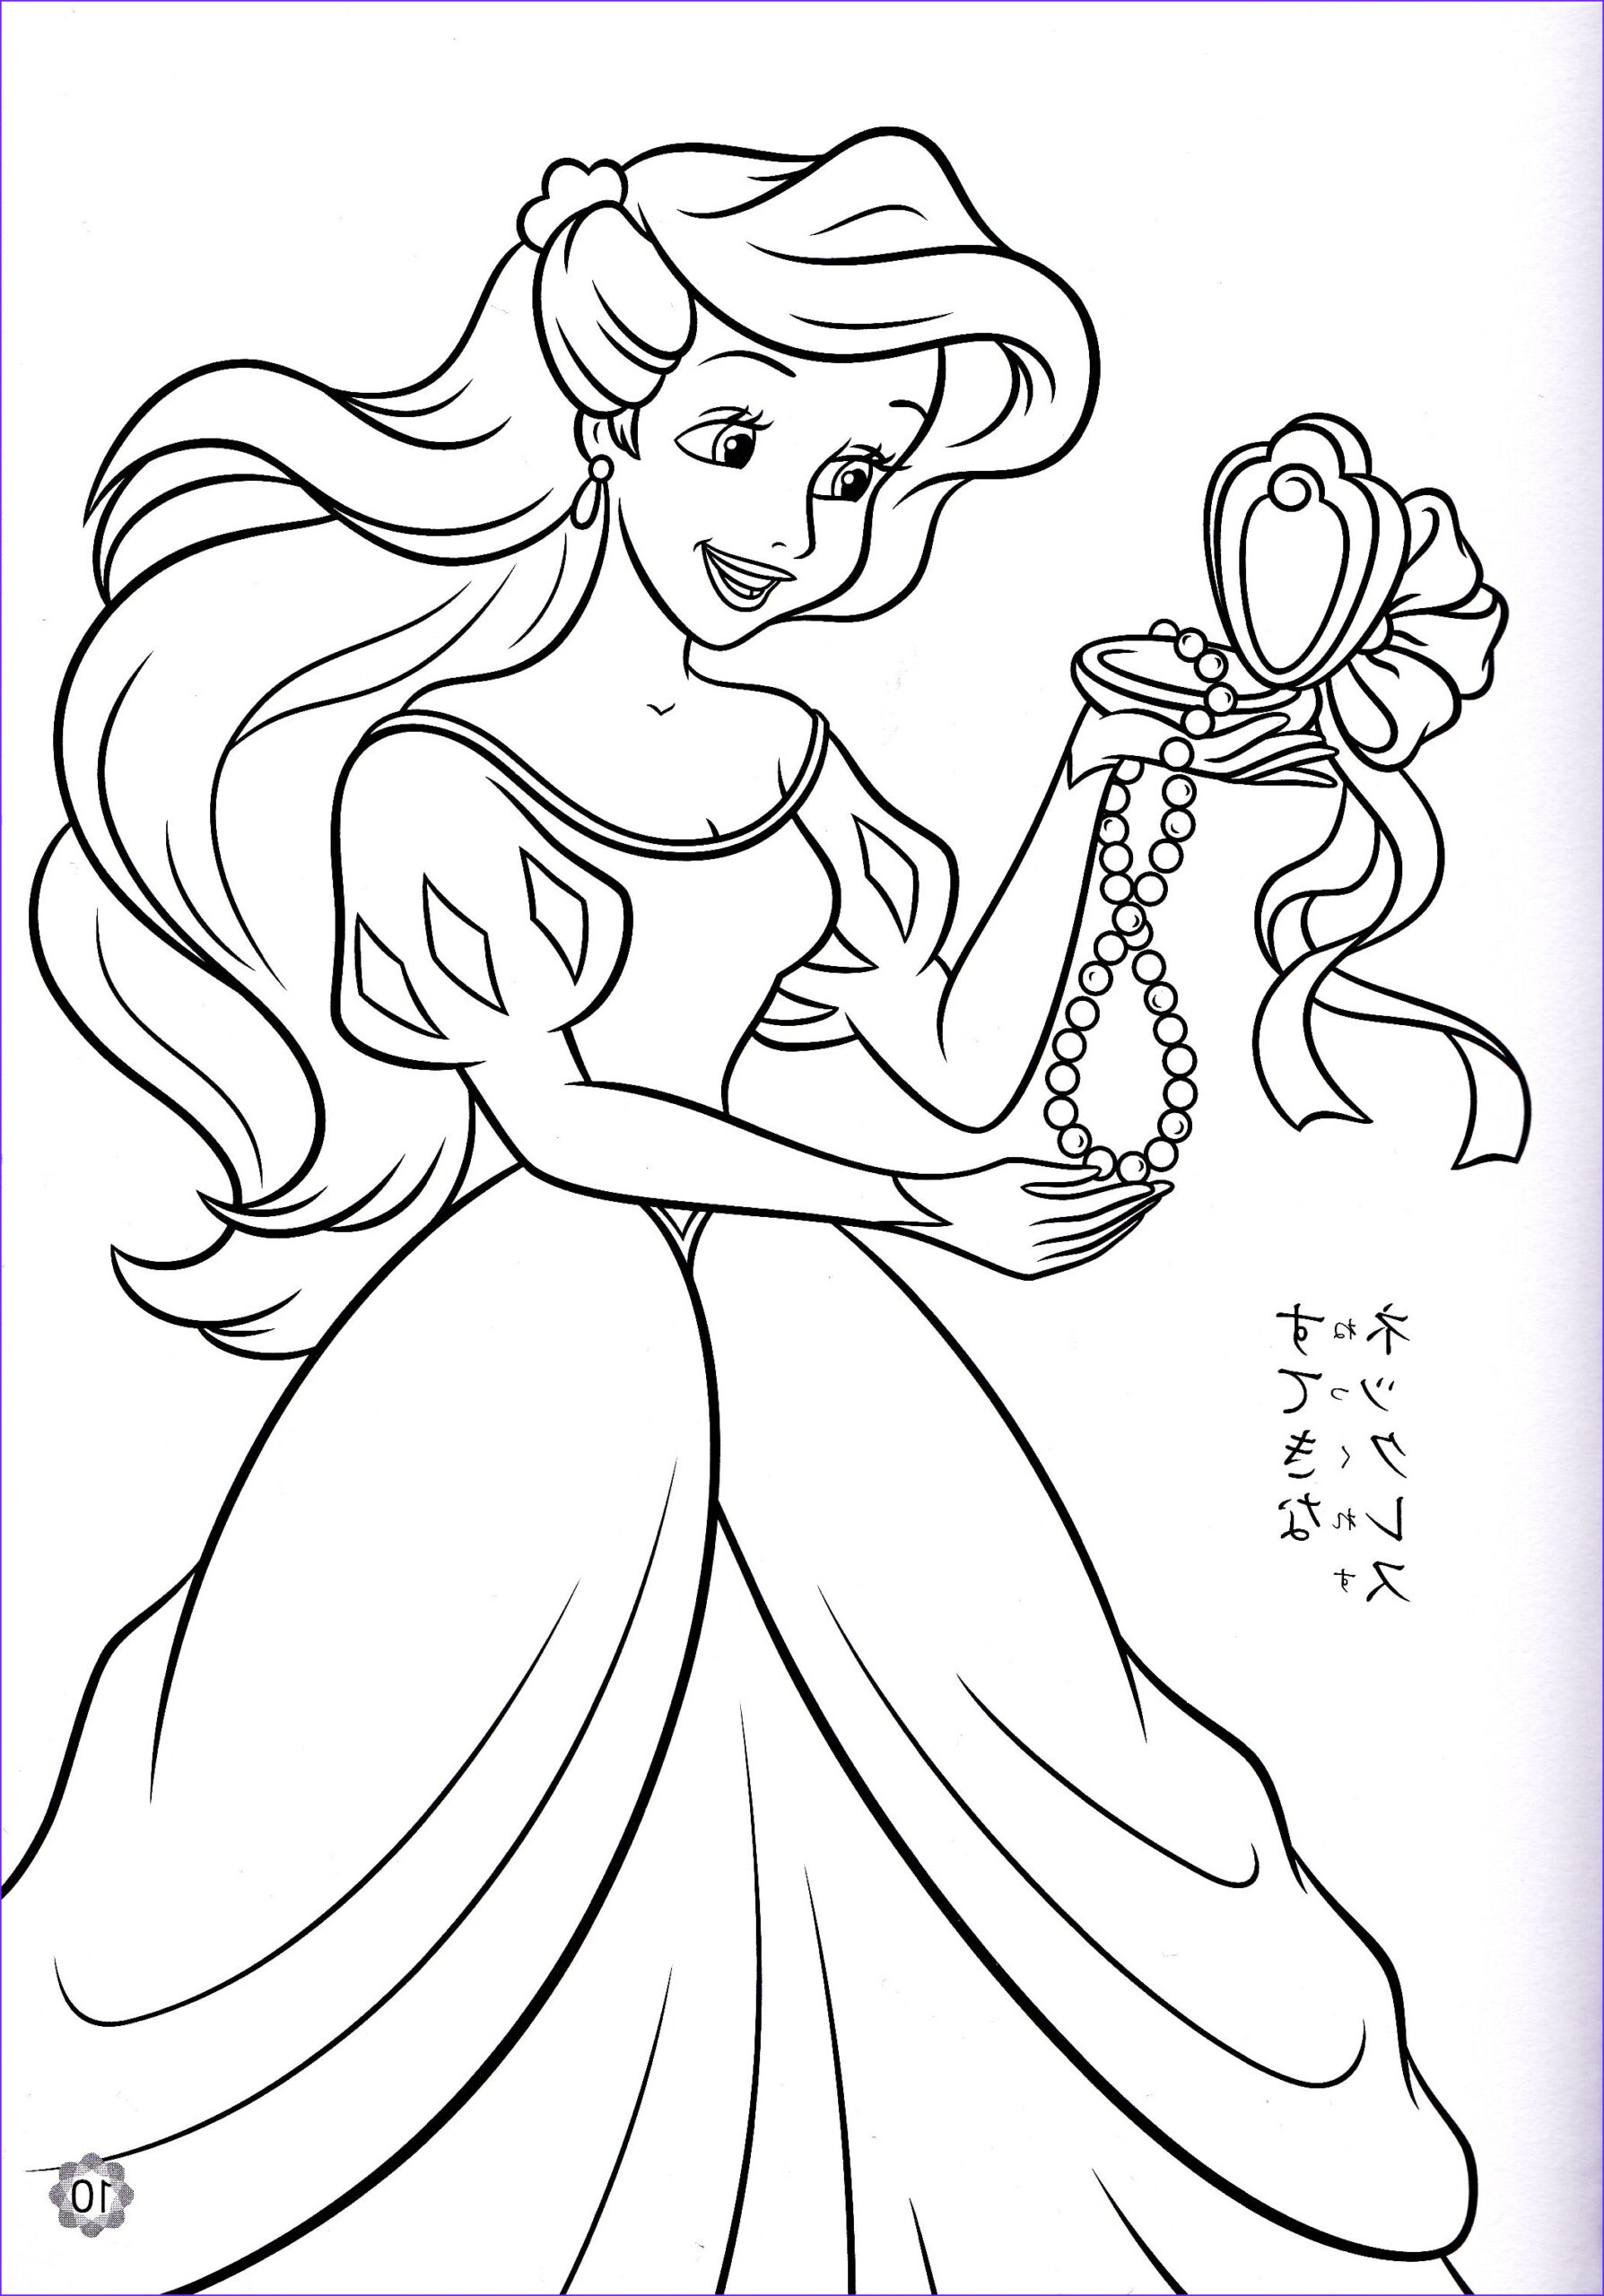 Disney Coloring Book for Adults Cool Images Free Printable Disney Coloring Books